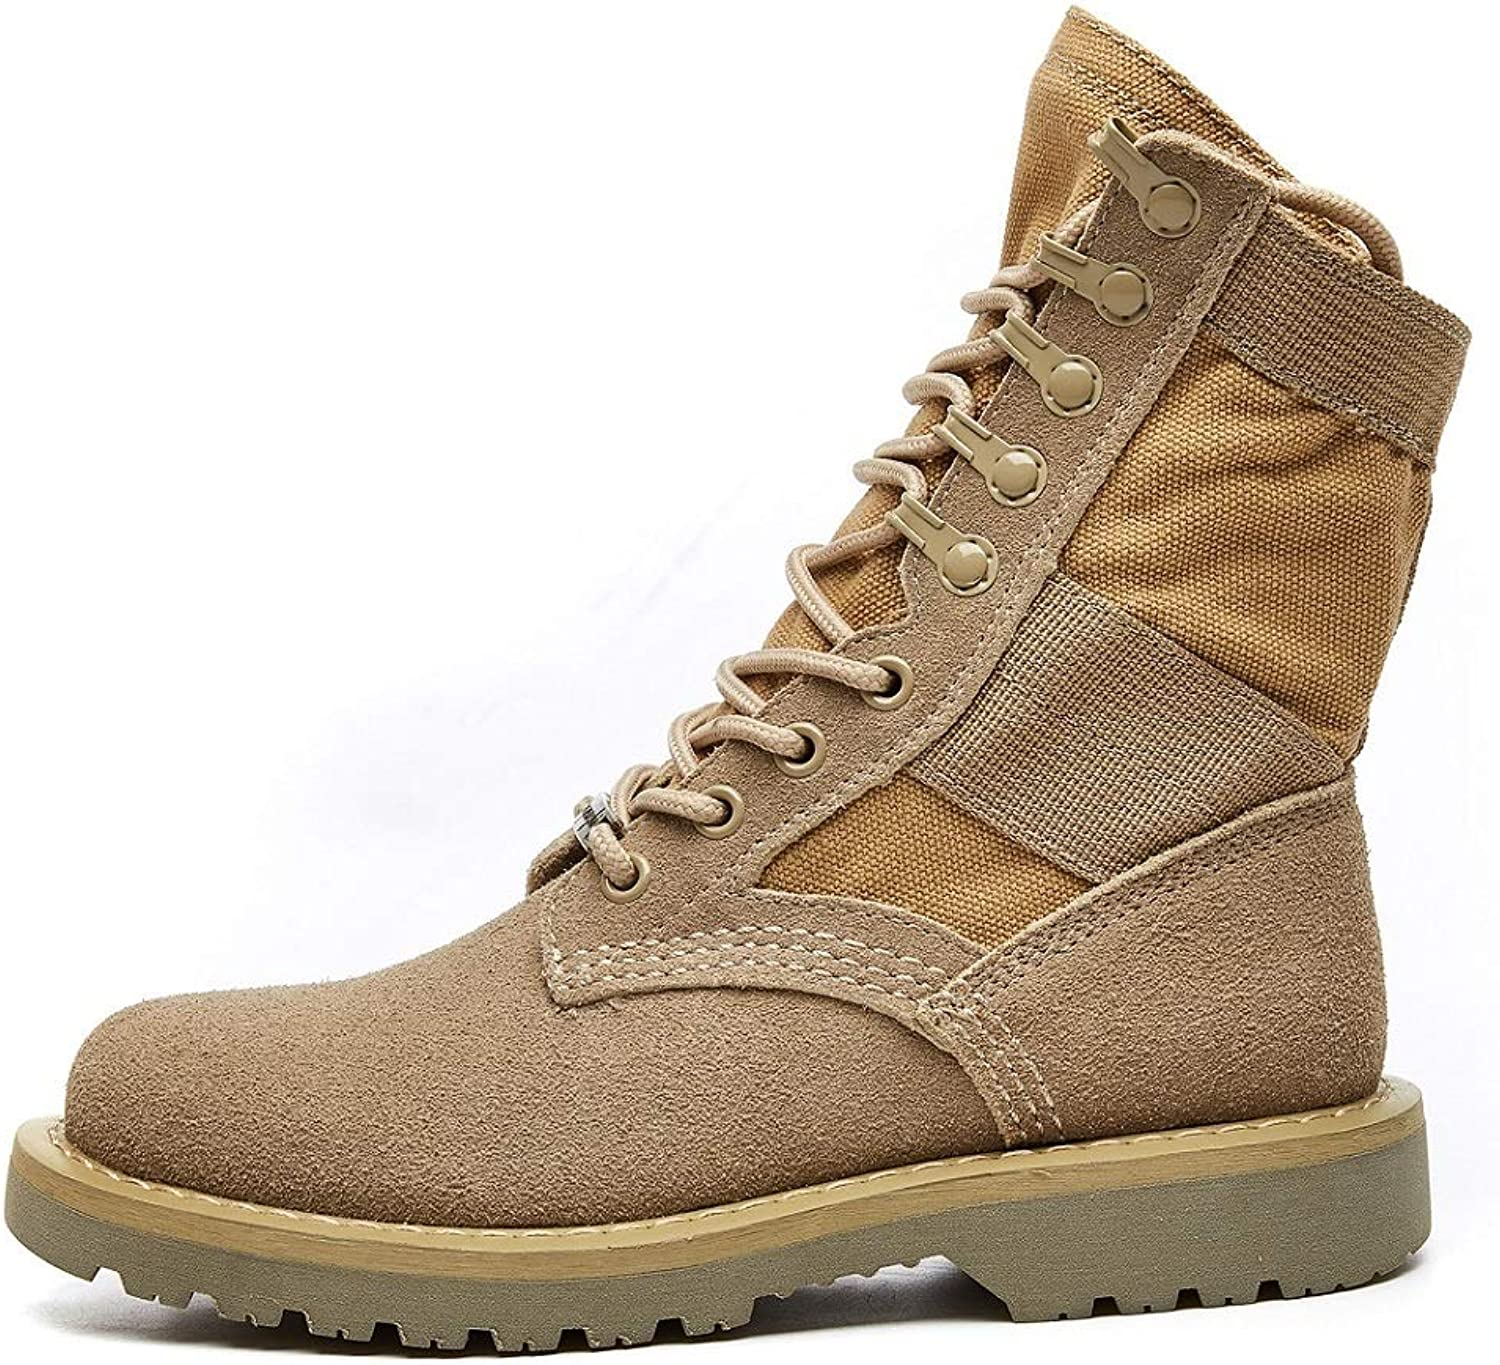 LIANGXIE Women's Ankle Outdoor Hiking Boots Rhubarb Boots High Help Desert Boots Women's Leather Workwear Boots Men's Boots Couple Boots Retro British Wind